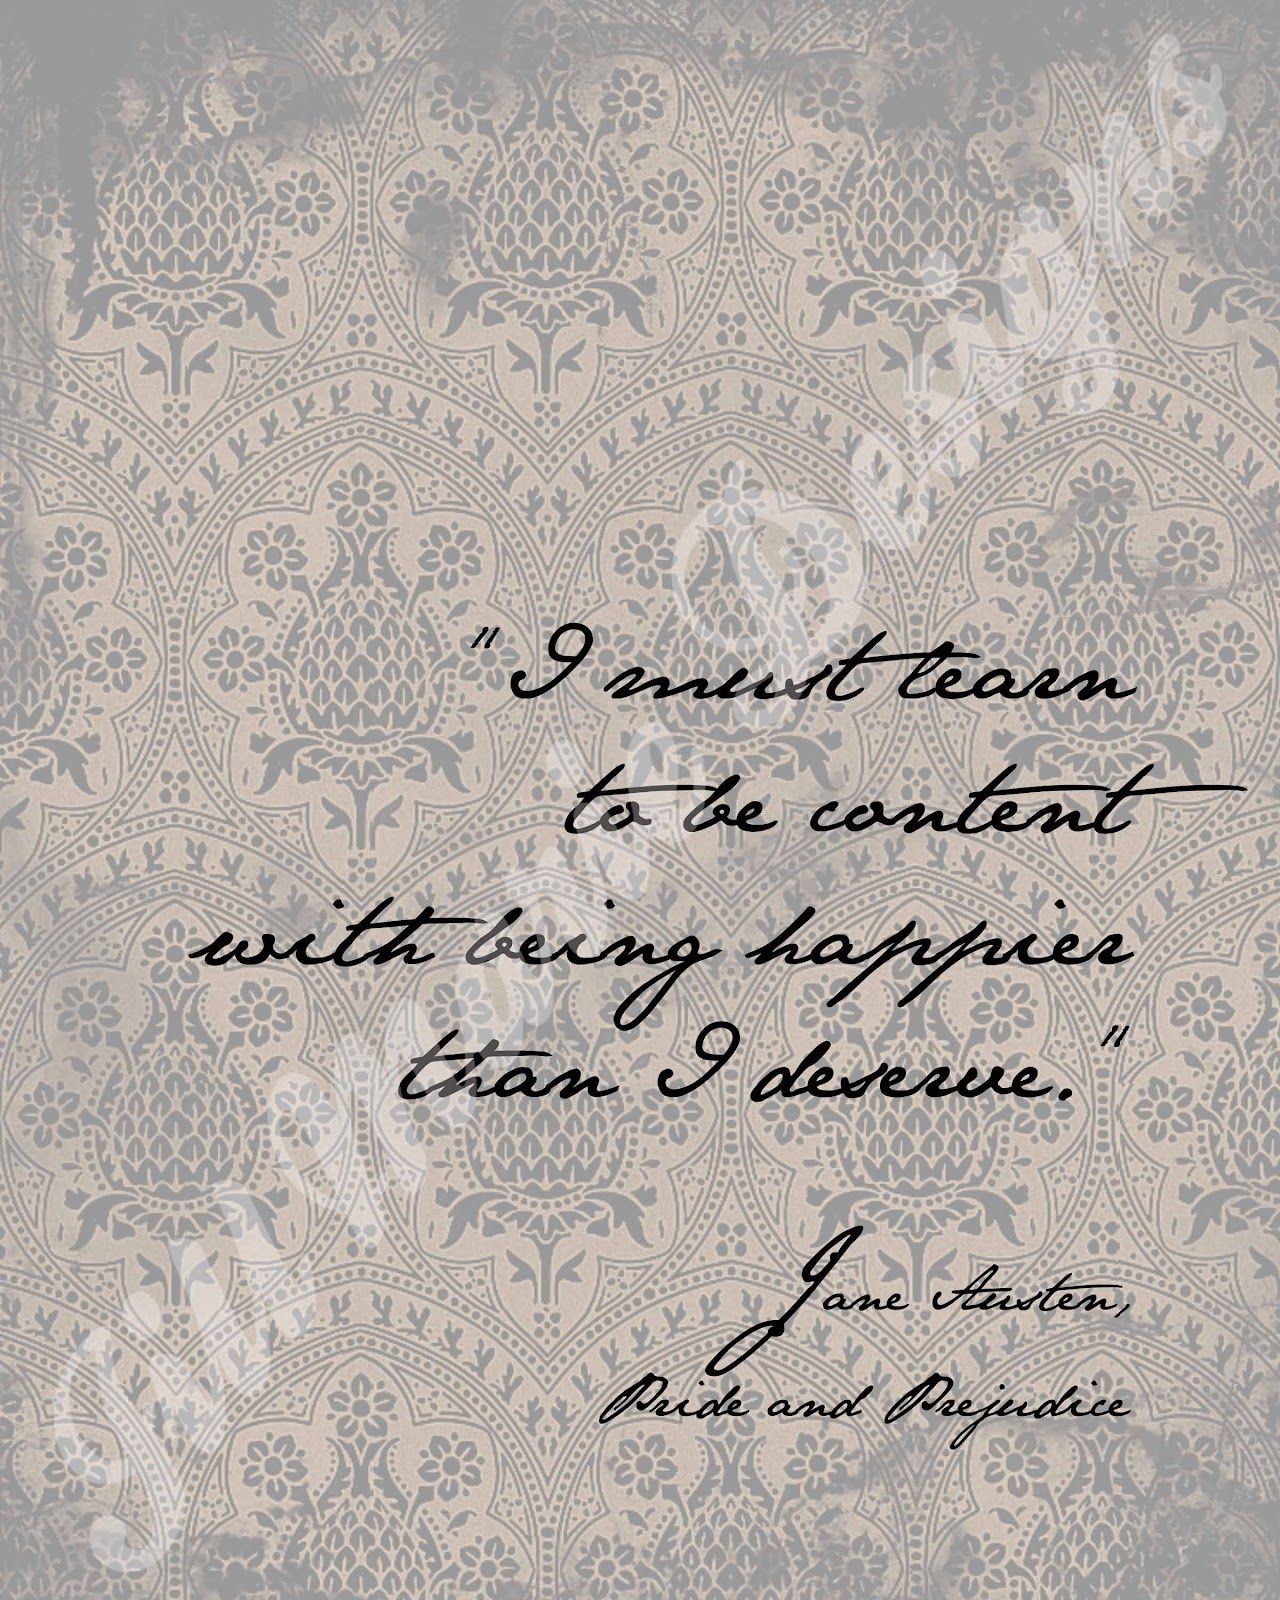 jpeg jane austen quotes 452x600 216 kb png jane austen quotes 500x...